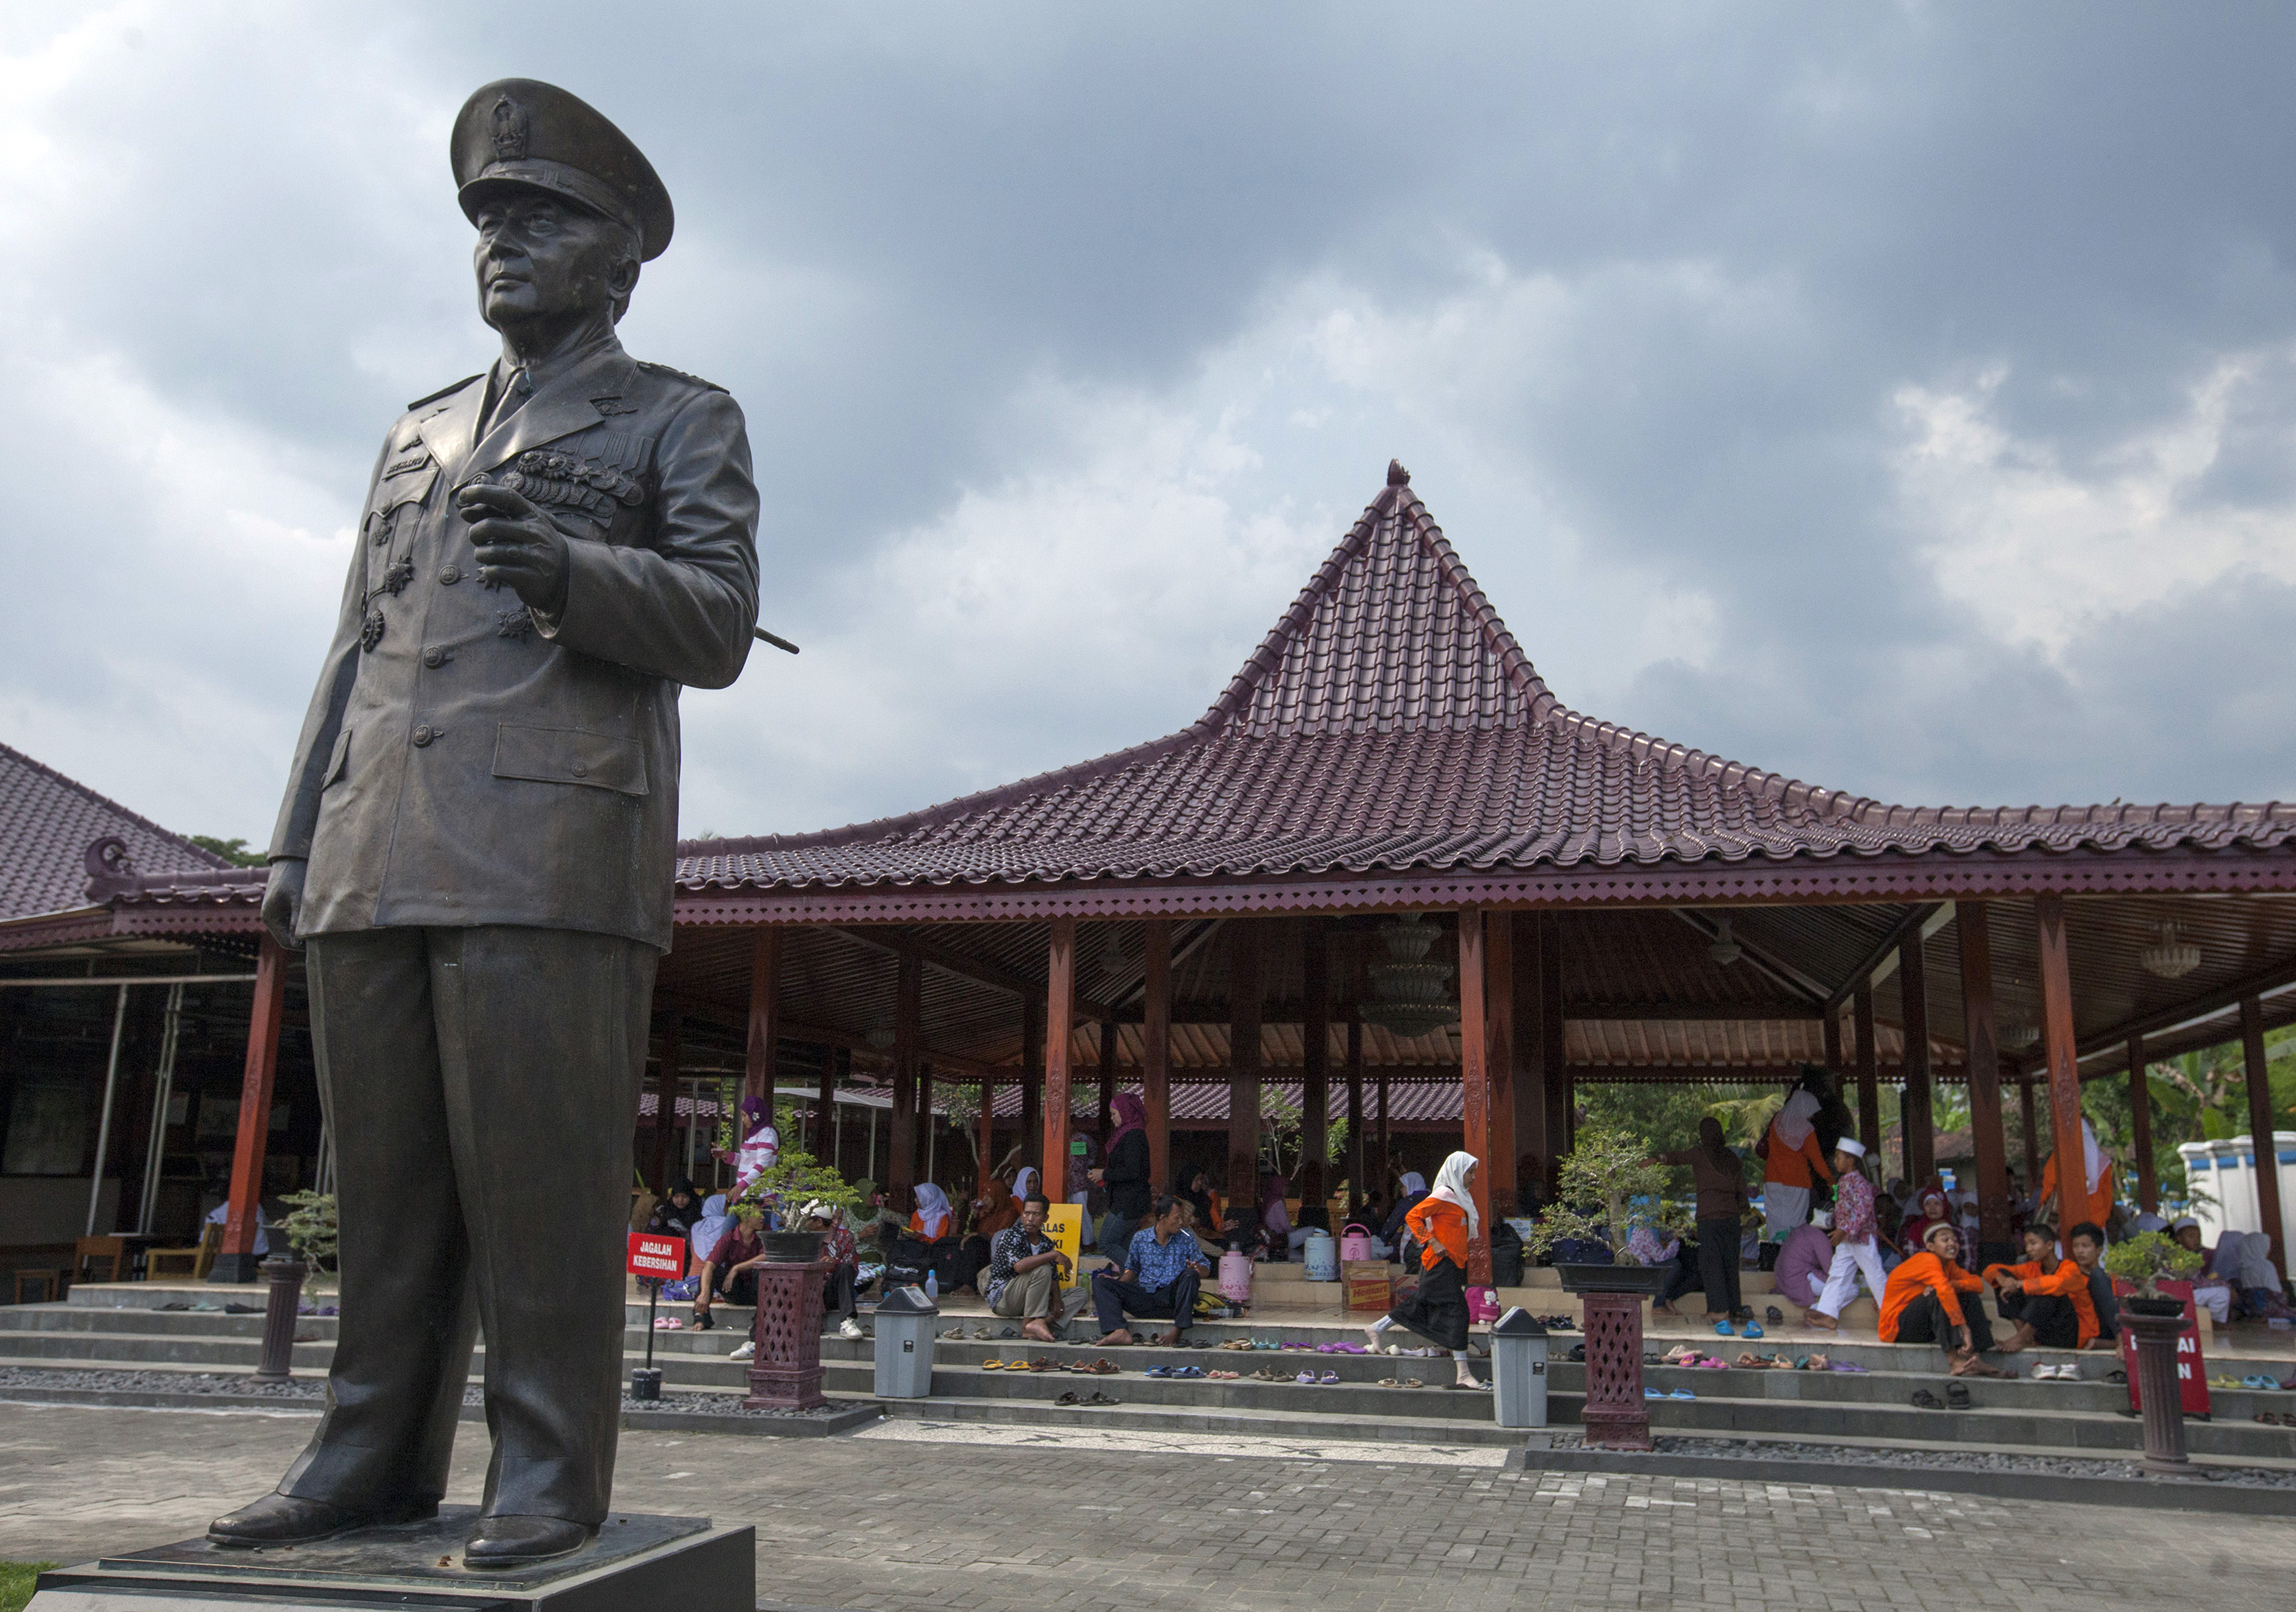 A statue of former Indonesian president Suharto is pictured at the Suharto museum in Yogyakarta, March 29, 2014.